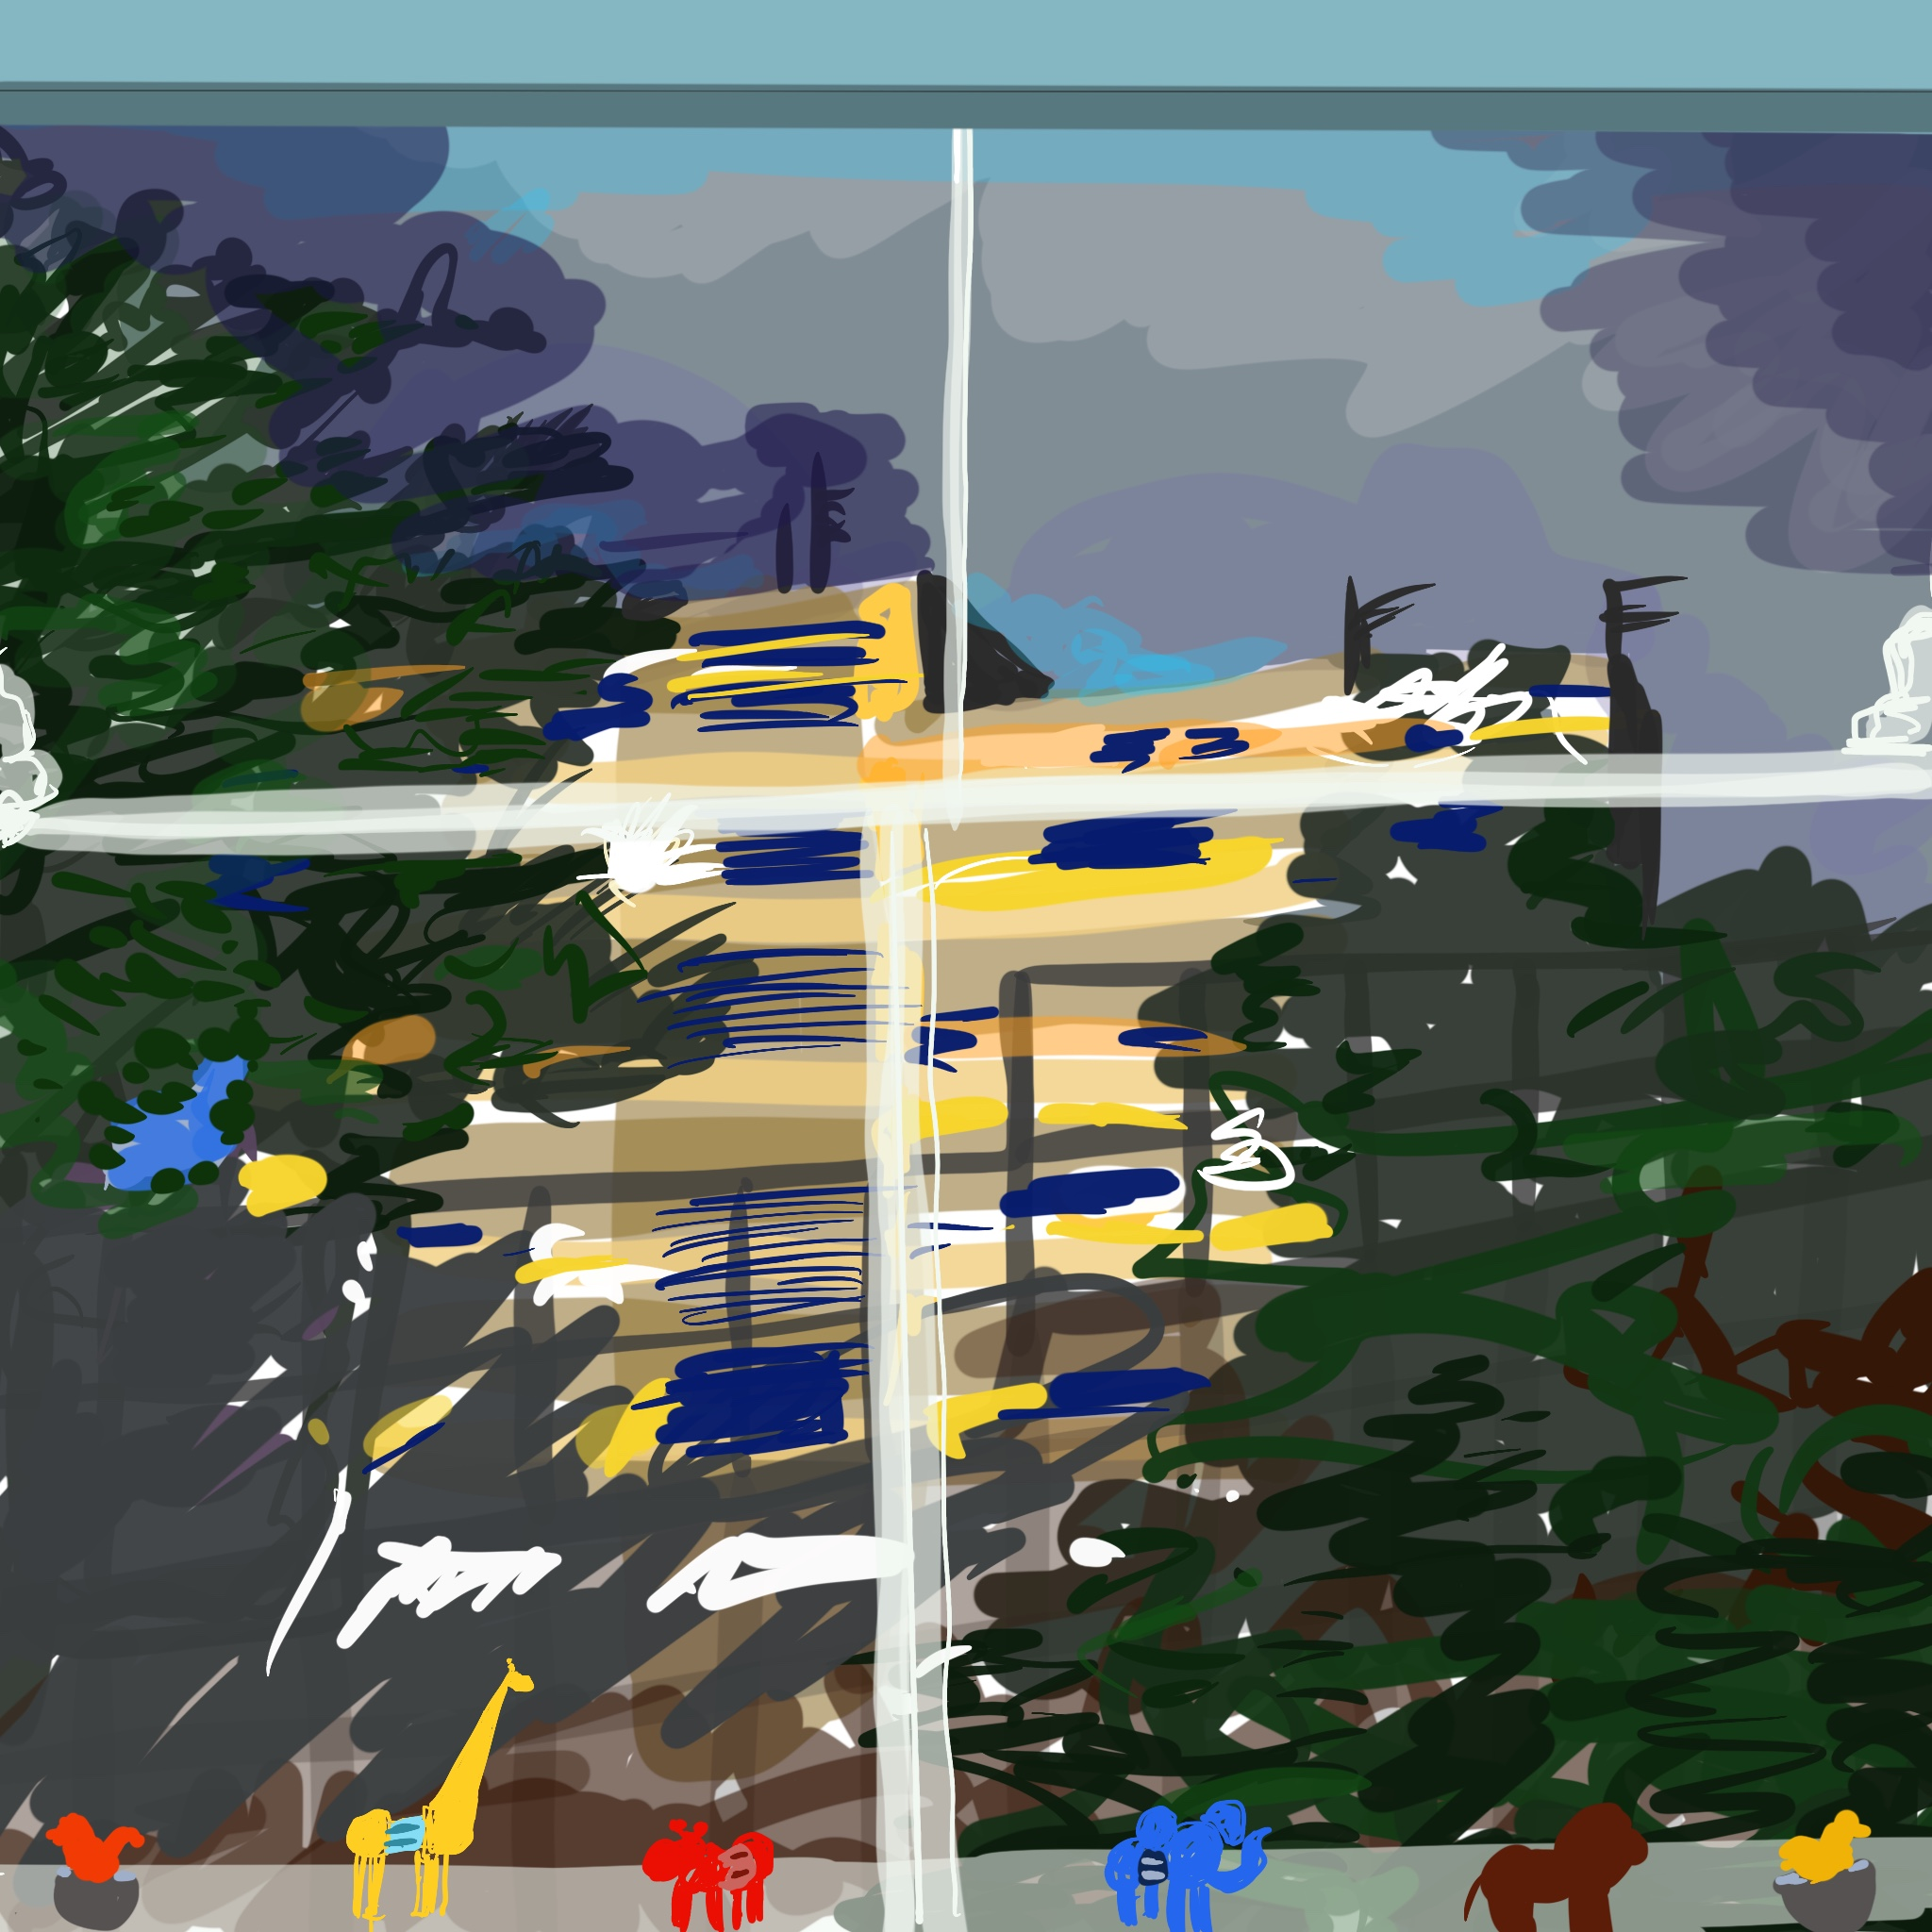 A digital painting of a view through my window. At the top is the sky made up of sweeping blues, greys and purples. At the centre is a block of flats lit up with warm sunshine yellow and flashes of bright white and dark blue. Swirls of green indicate trees to the left and right of the image and in the foreground six tiny, brightly-coloured animals sit on the window ledge.